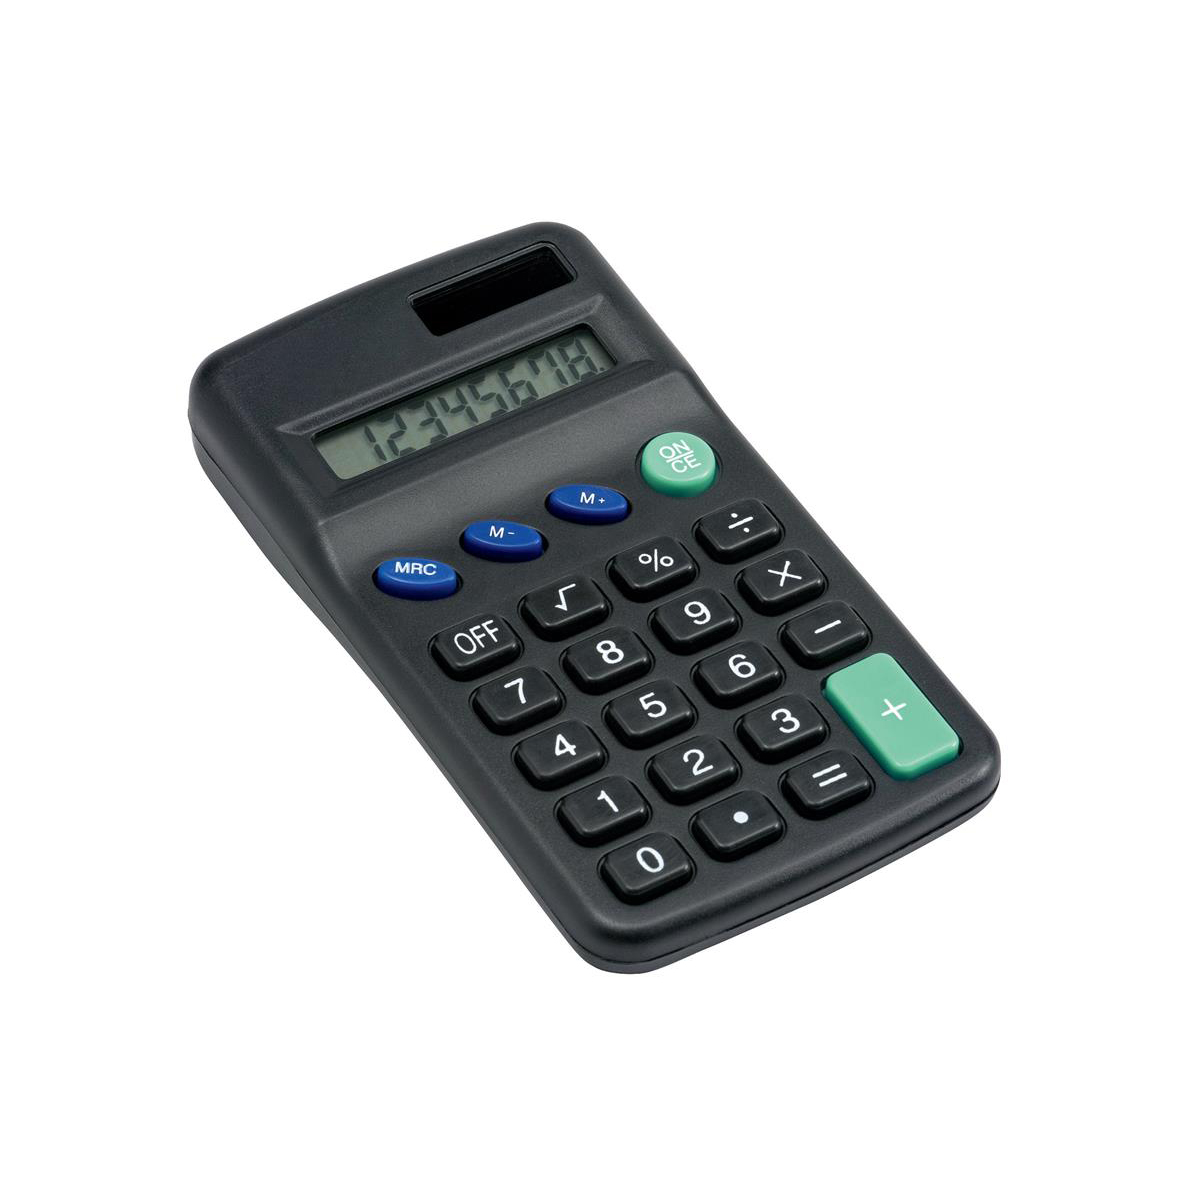 Handheld Calculator 5 Star Office Pocket Calculator 8 Key Display Solar and Battery Power 63x17x113mm Black